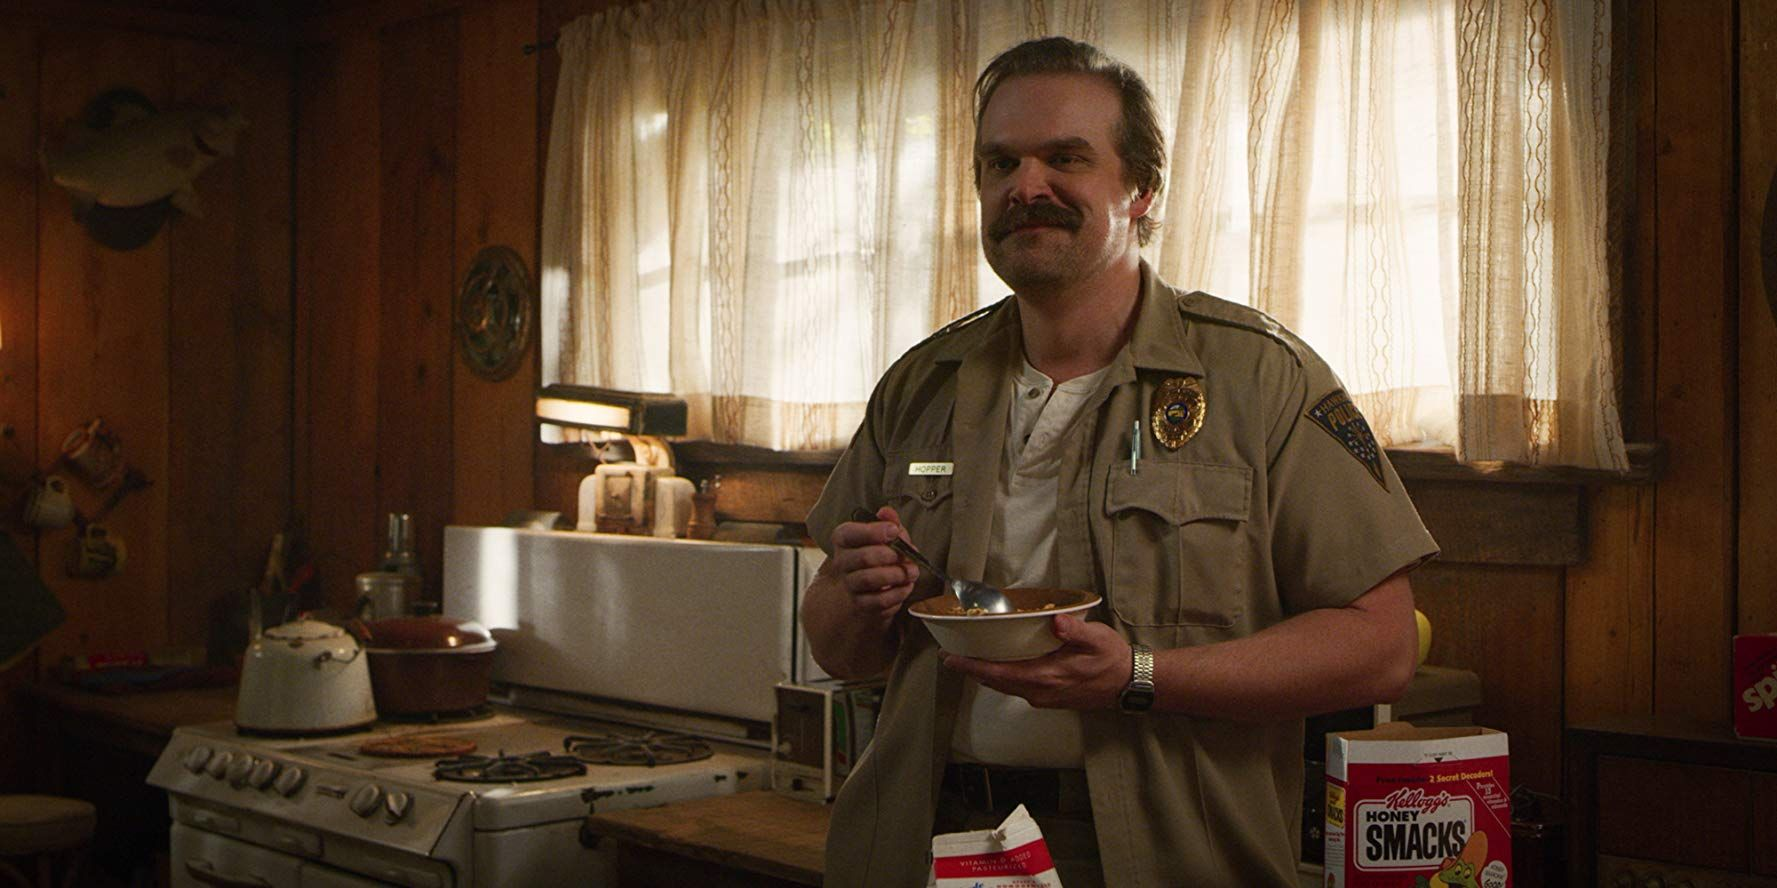 Image may contain: Stranger Things 3 end credit scene, post credits, Stranger Things 3, explained, theory, theories, ending, is Hopper dead, who, the American, door, spoilers, Netflix, finale, Stranger Things, hopper, alive, Jim Hopper, David Harbour,  Microwave, Oven, Appliance, Person, Human